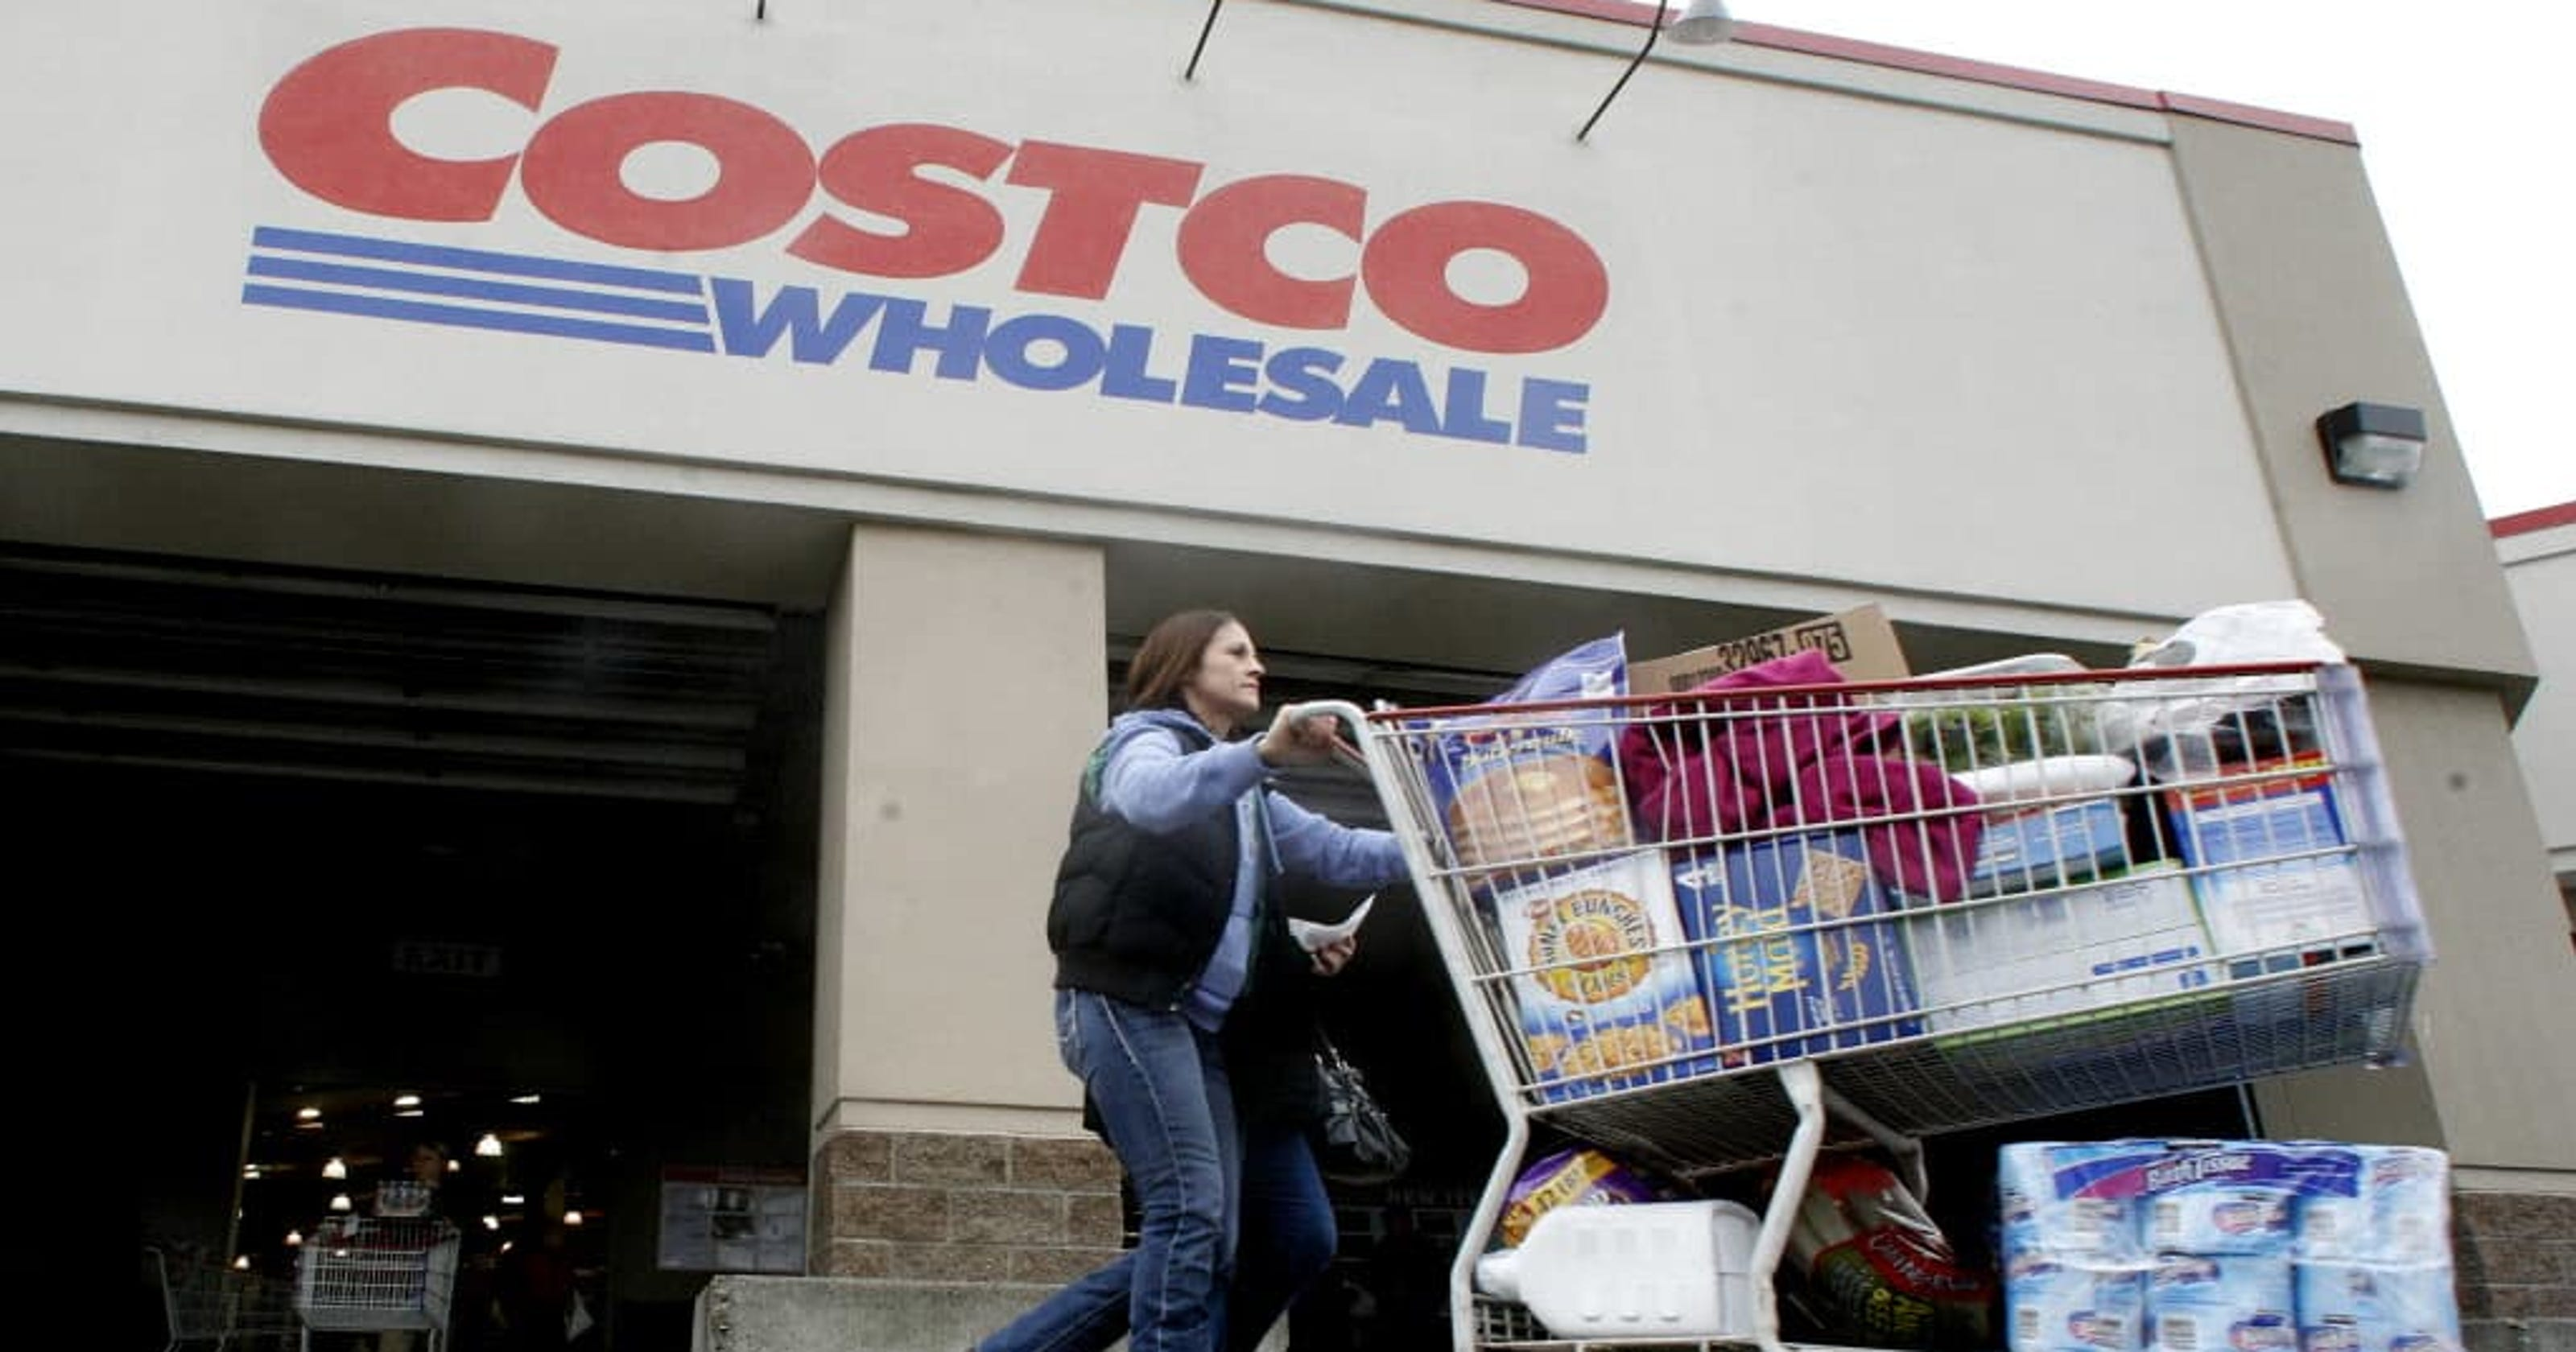 costco eyeing evansville for possible store location